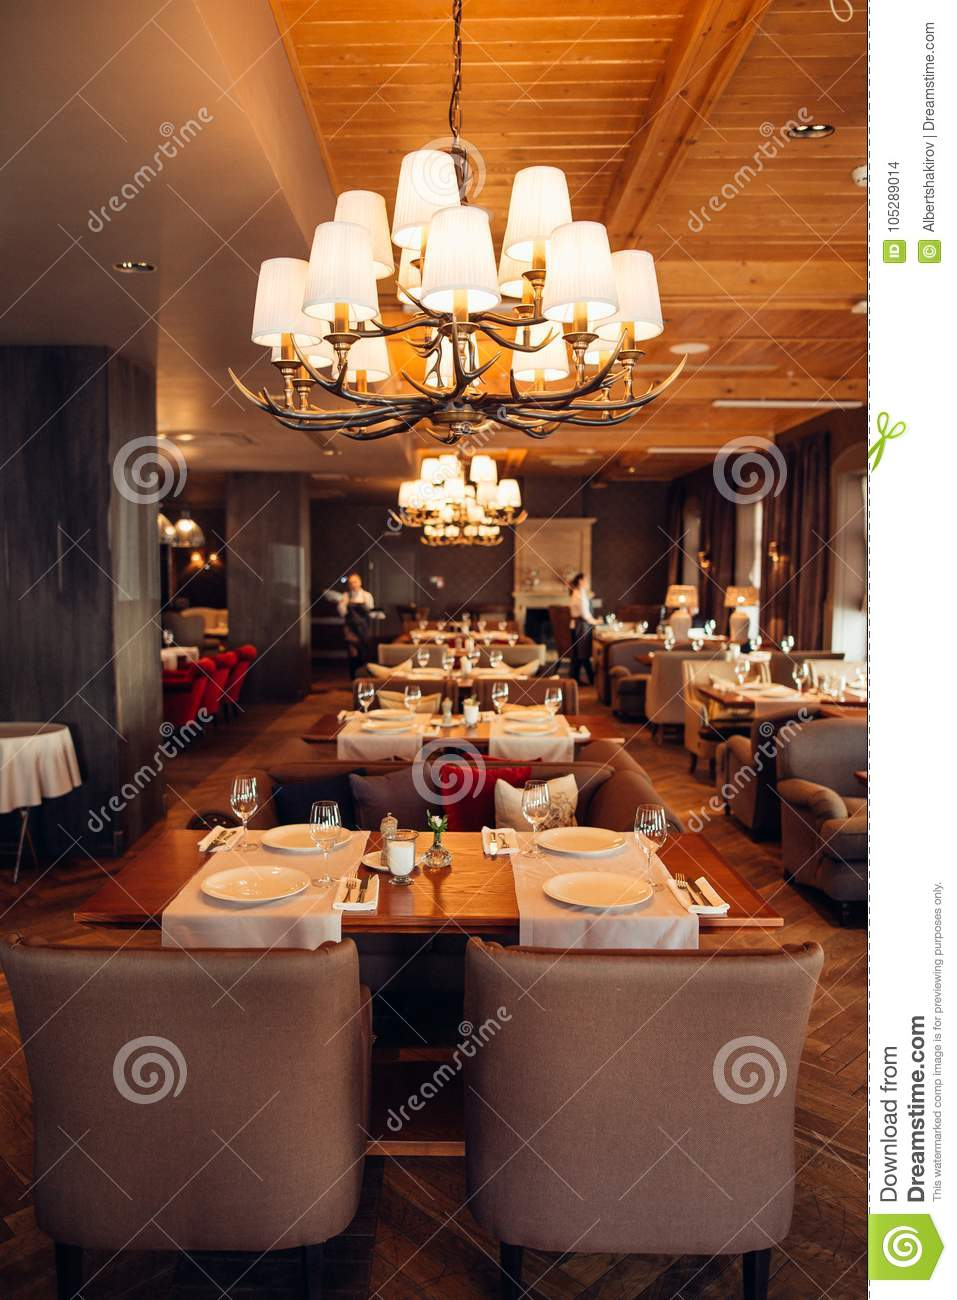 Interior Of A Restaurant Vintage Style Wooden Classical Furniture Stock Photo Image Of Cafe Building 105289014